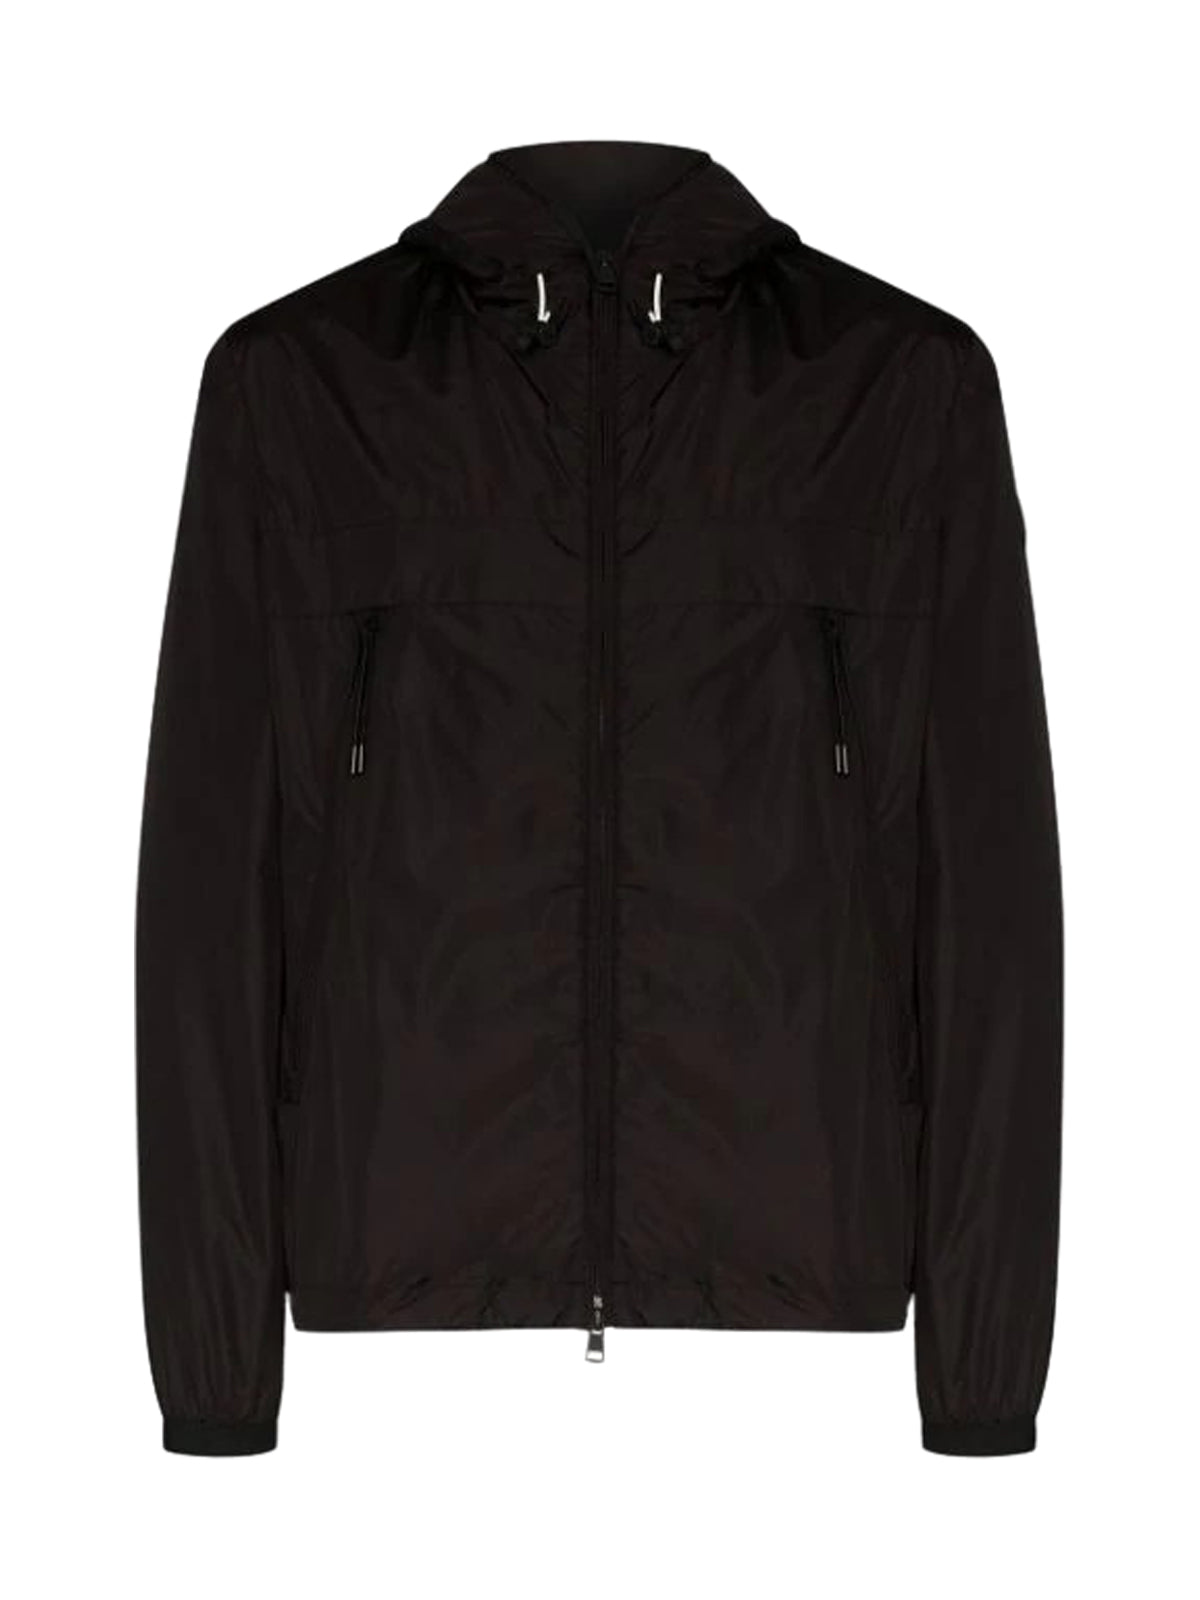 Massereau hooded jacket